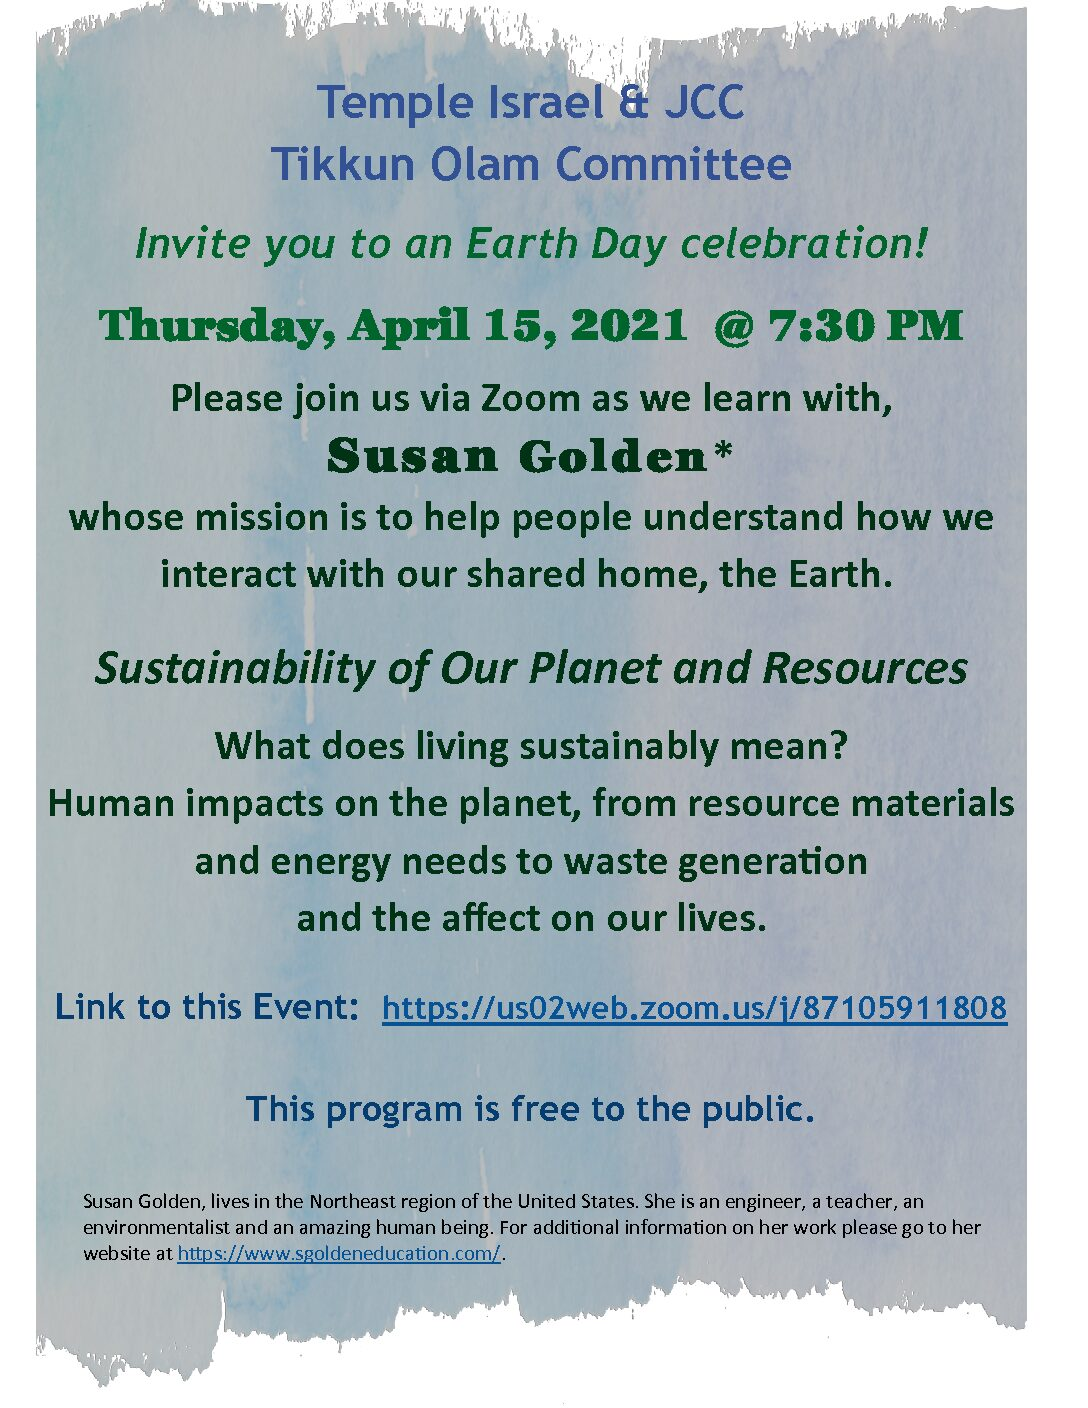 Earth Day Speaker - Susan Golden: Sustainably of the Planet & It's Resources